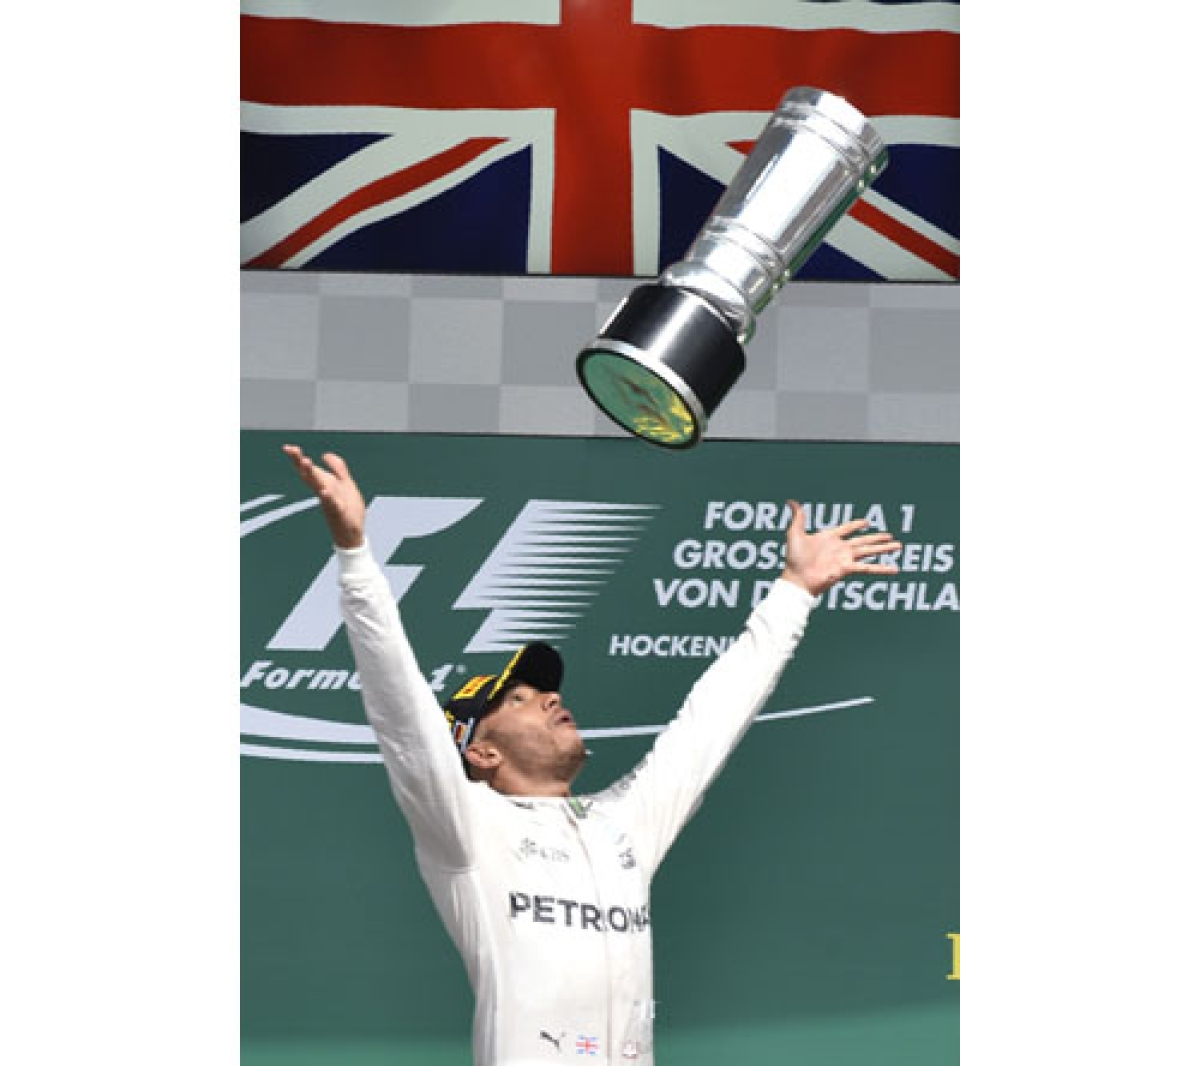 TOPSHOT - Mercedes AMG Petronas F1 Team's British driver Lewis Hamilton (C) throws the trophy after winning next to second placed Red Bull Racing's Australian driver Daniel Ricciardo (L) amd Red Bull racing's Belgian-Dutch driver Max Verstappen (R) at the Hockenheim circuit, southern Germany, on July 31, 2016 during the Formula One Grand Prix of Germany. / AFP PHOTO / Thomas Kienzle